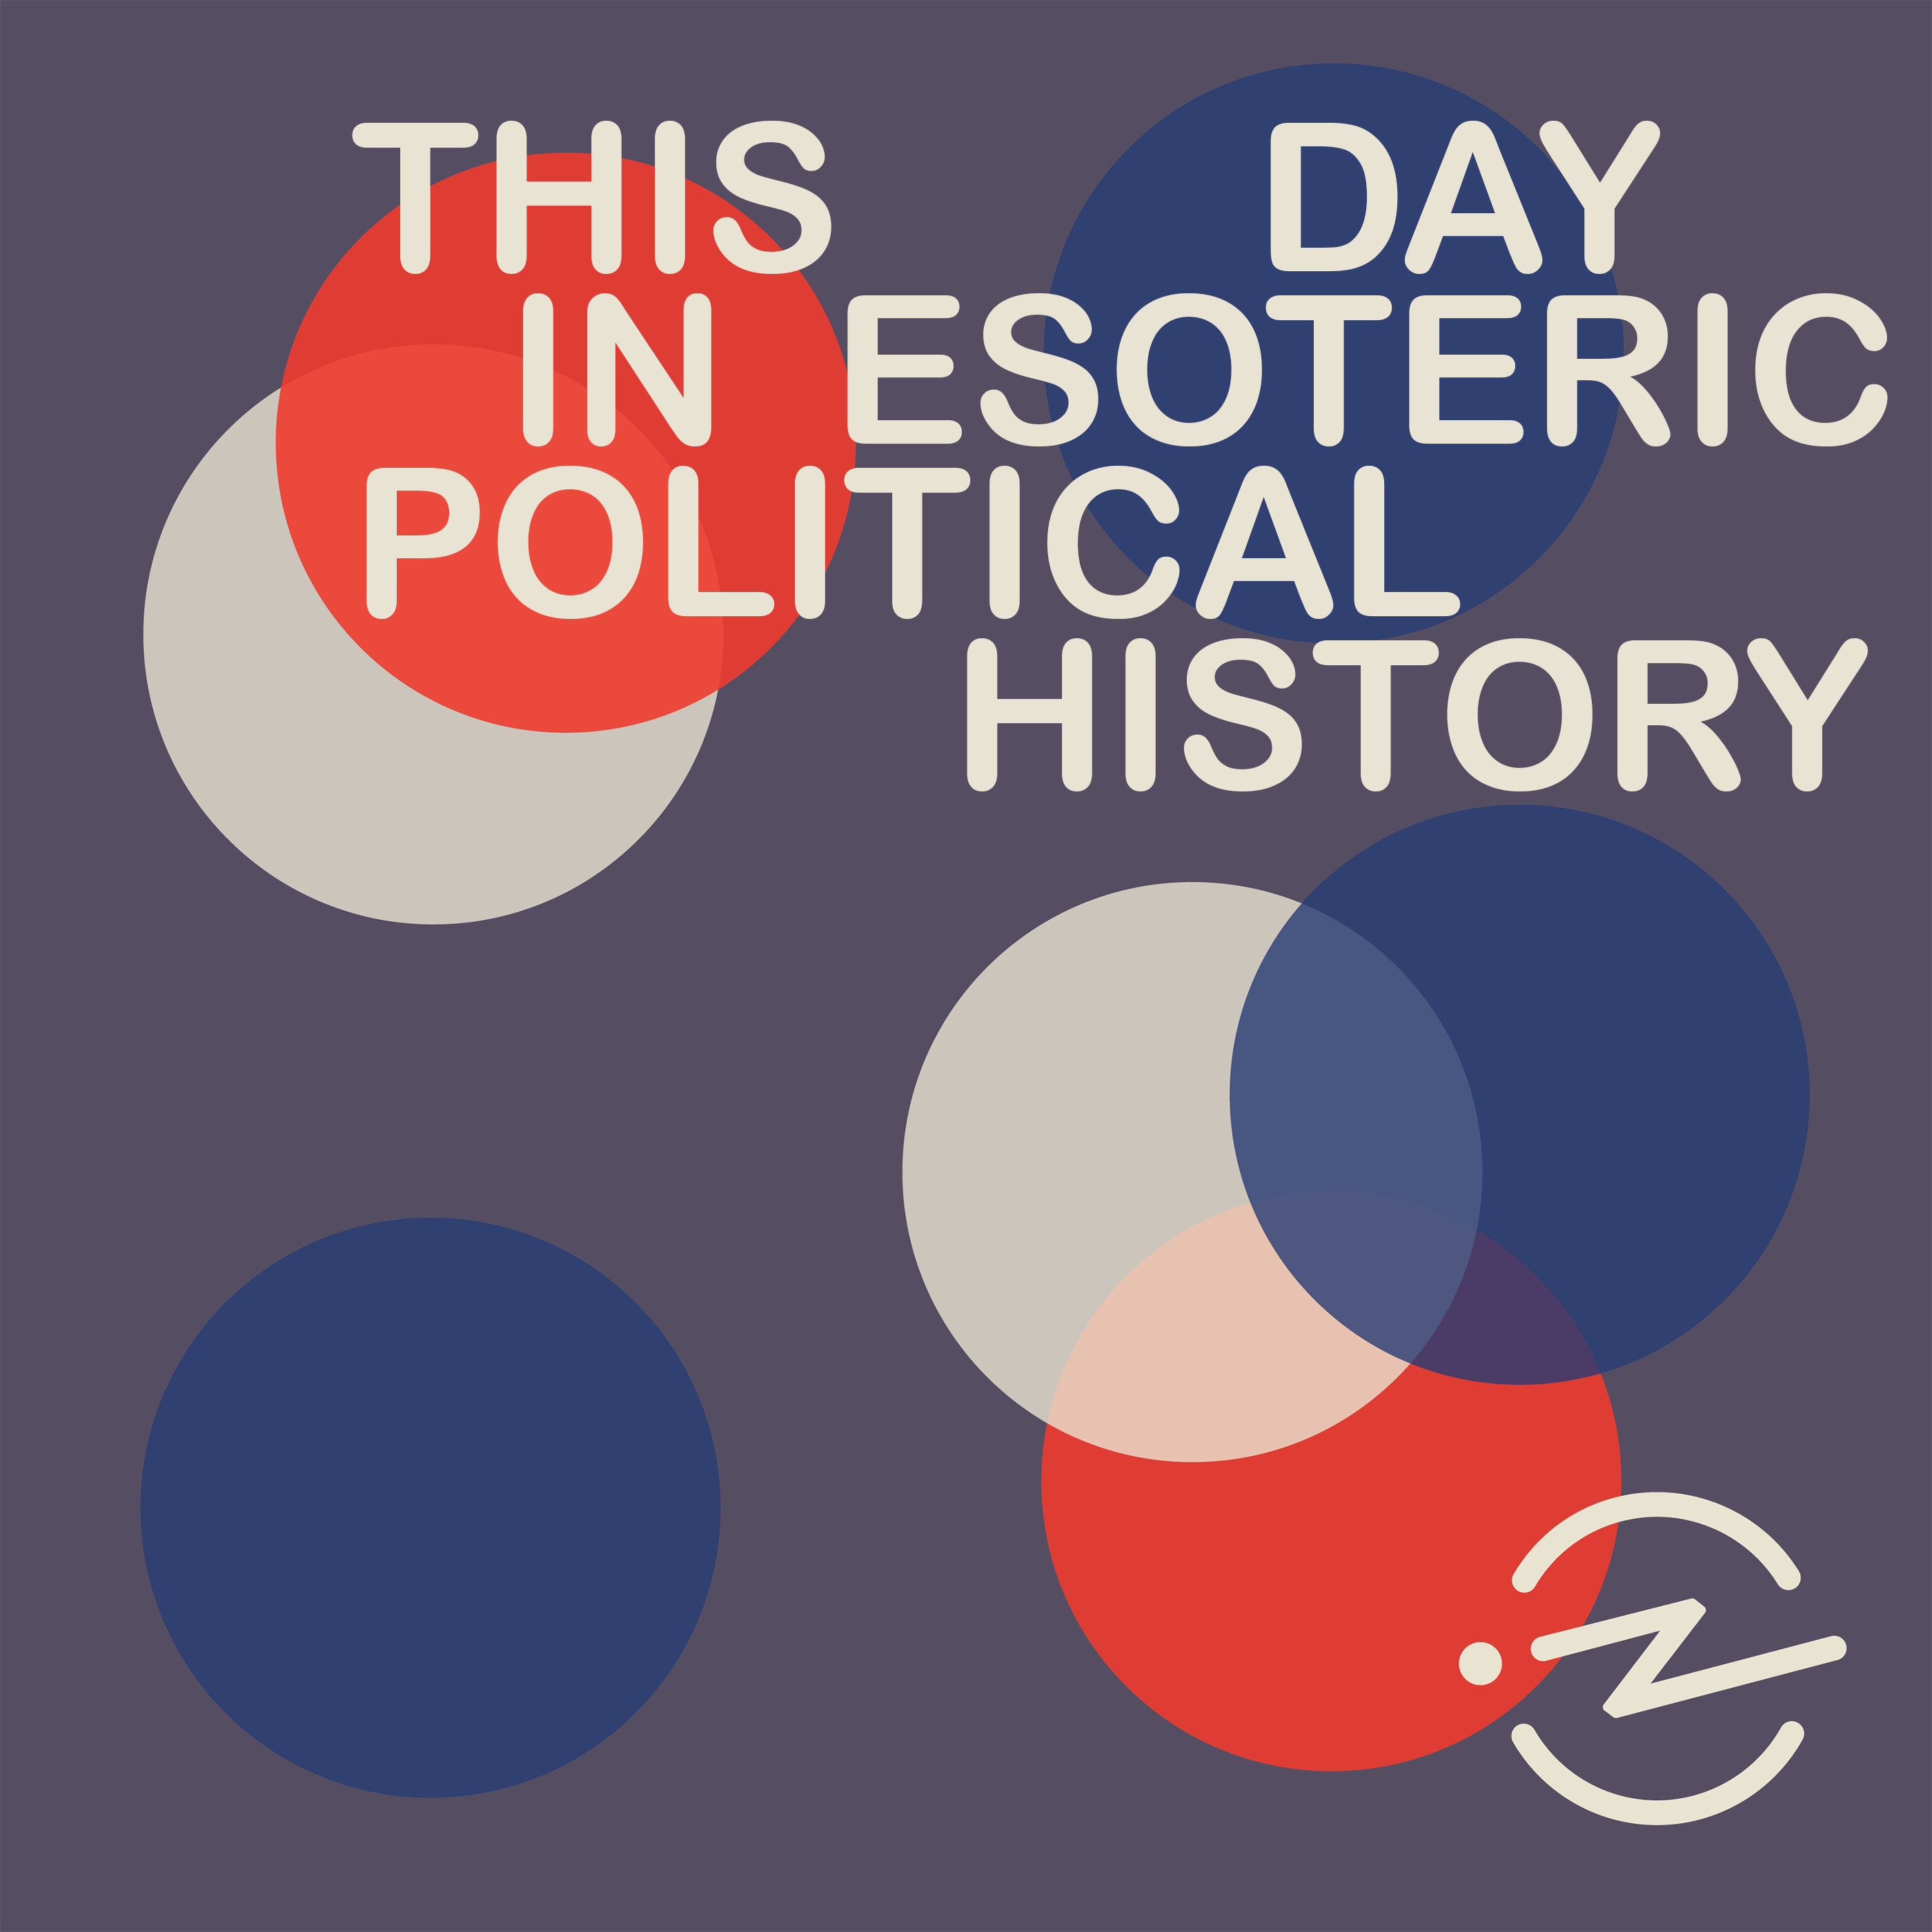 This Day in Esoteric Political History